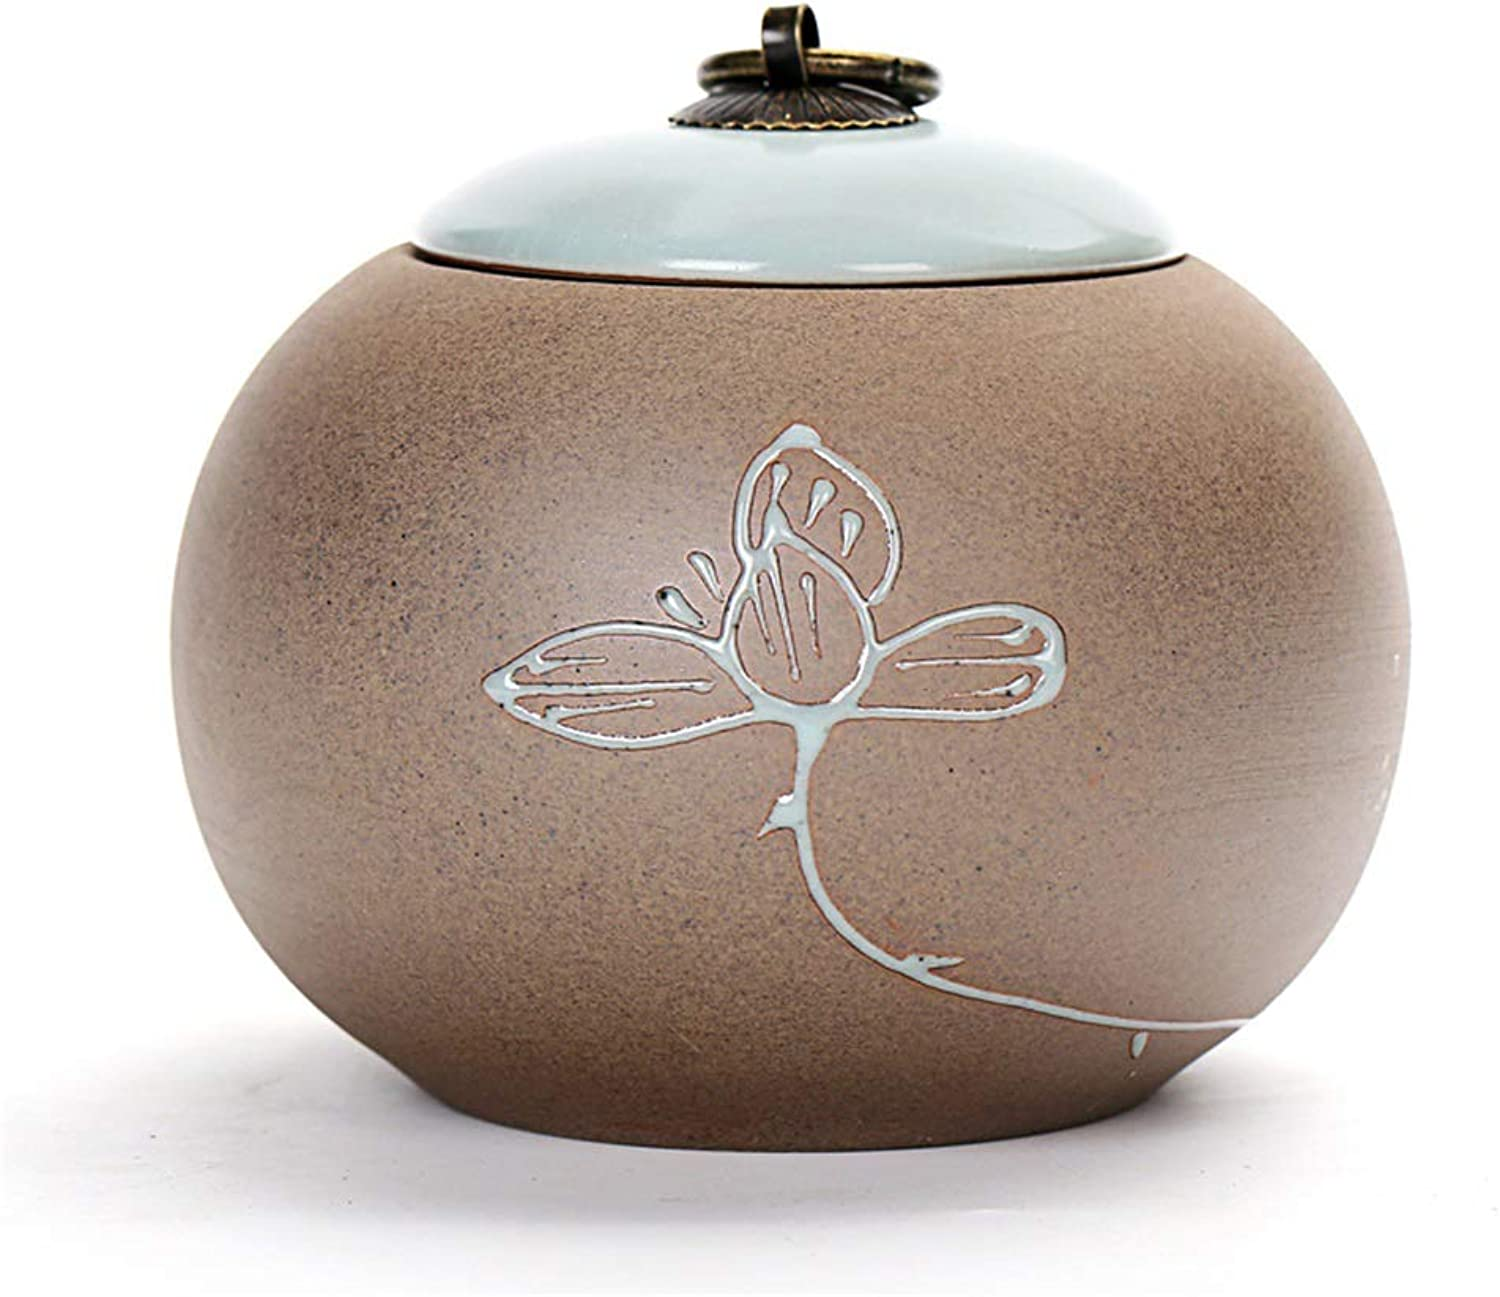 Cremation Urn, Memorial Urns for Human or Pet Ashes, Ceramics Funeral Urn Suitable for Cemetery Burial or Niche,D